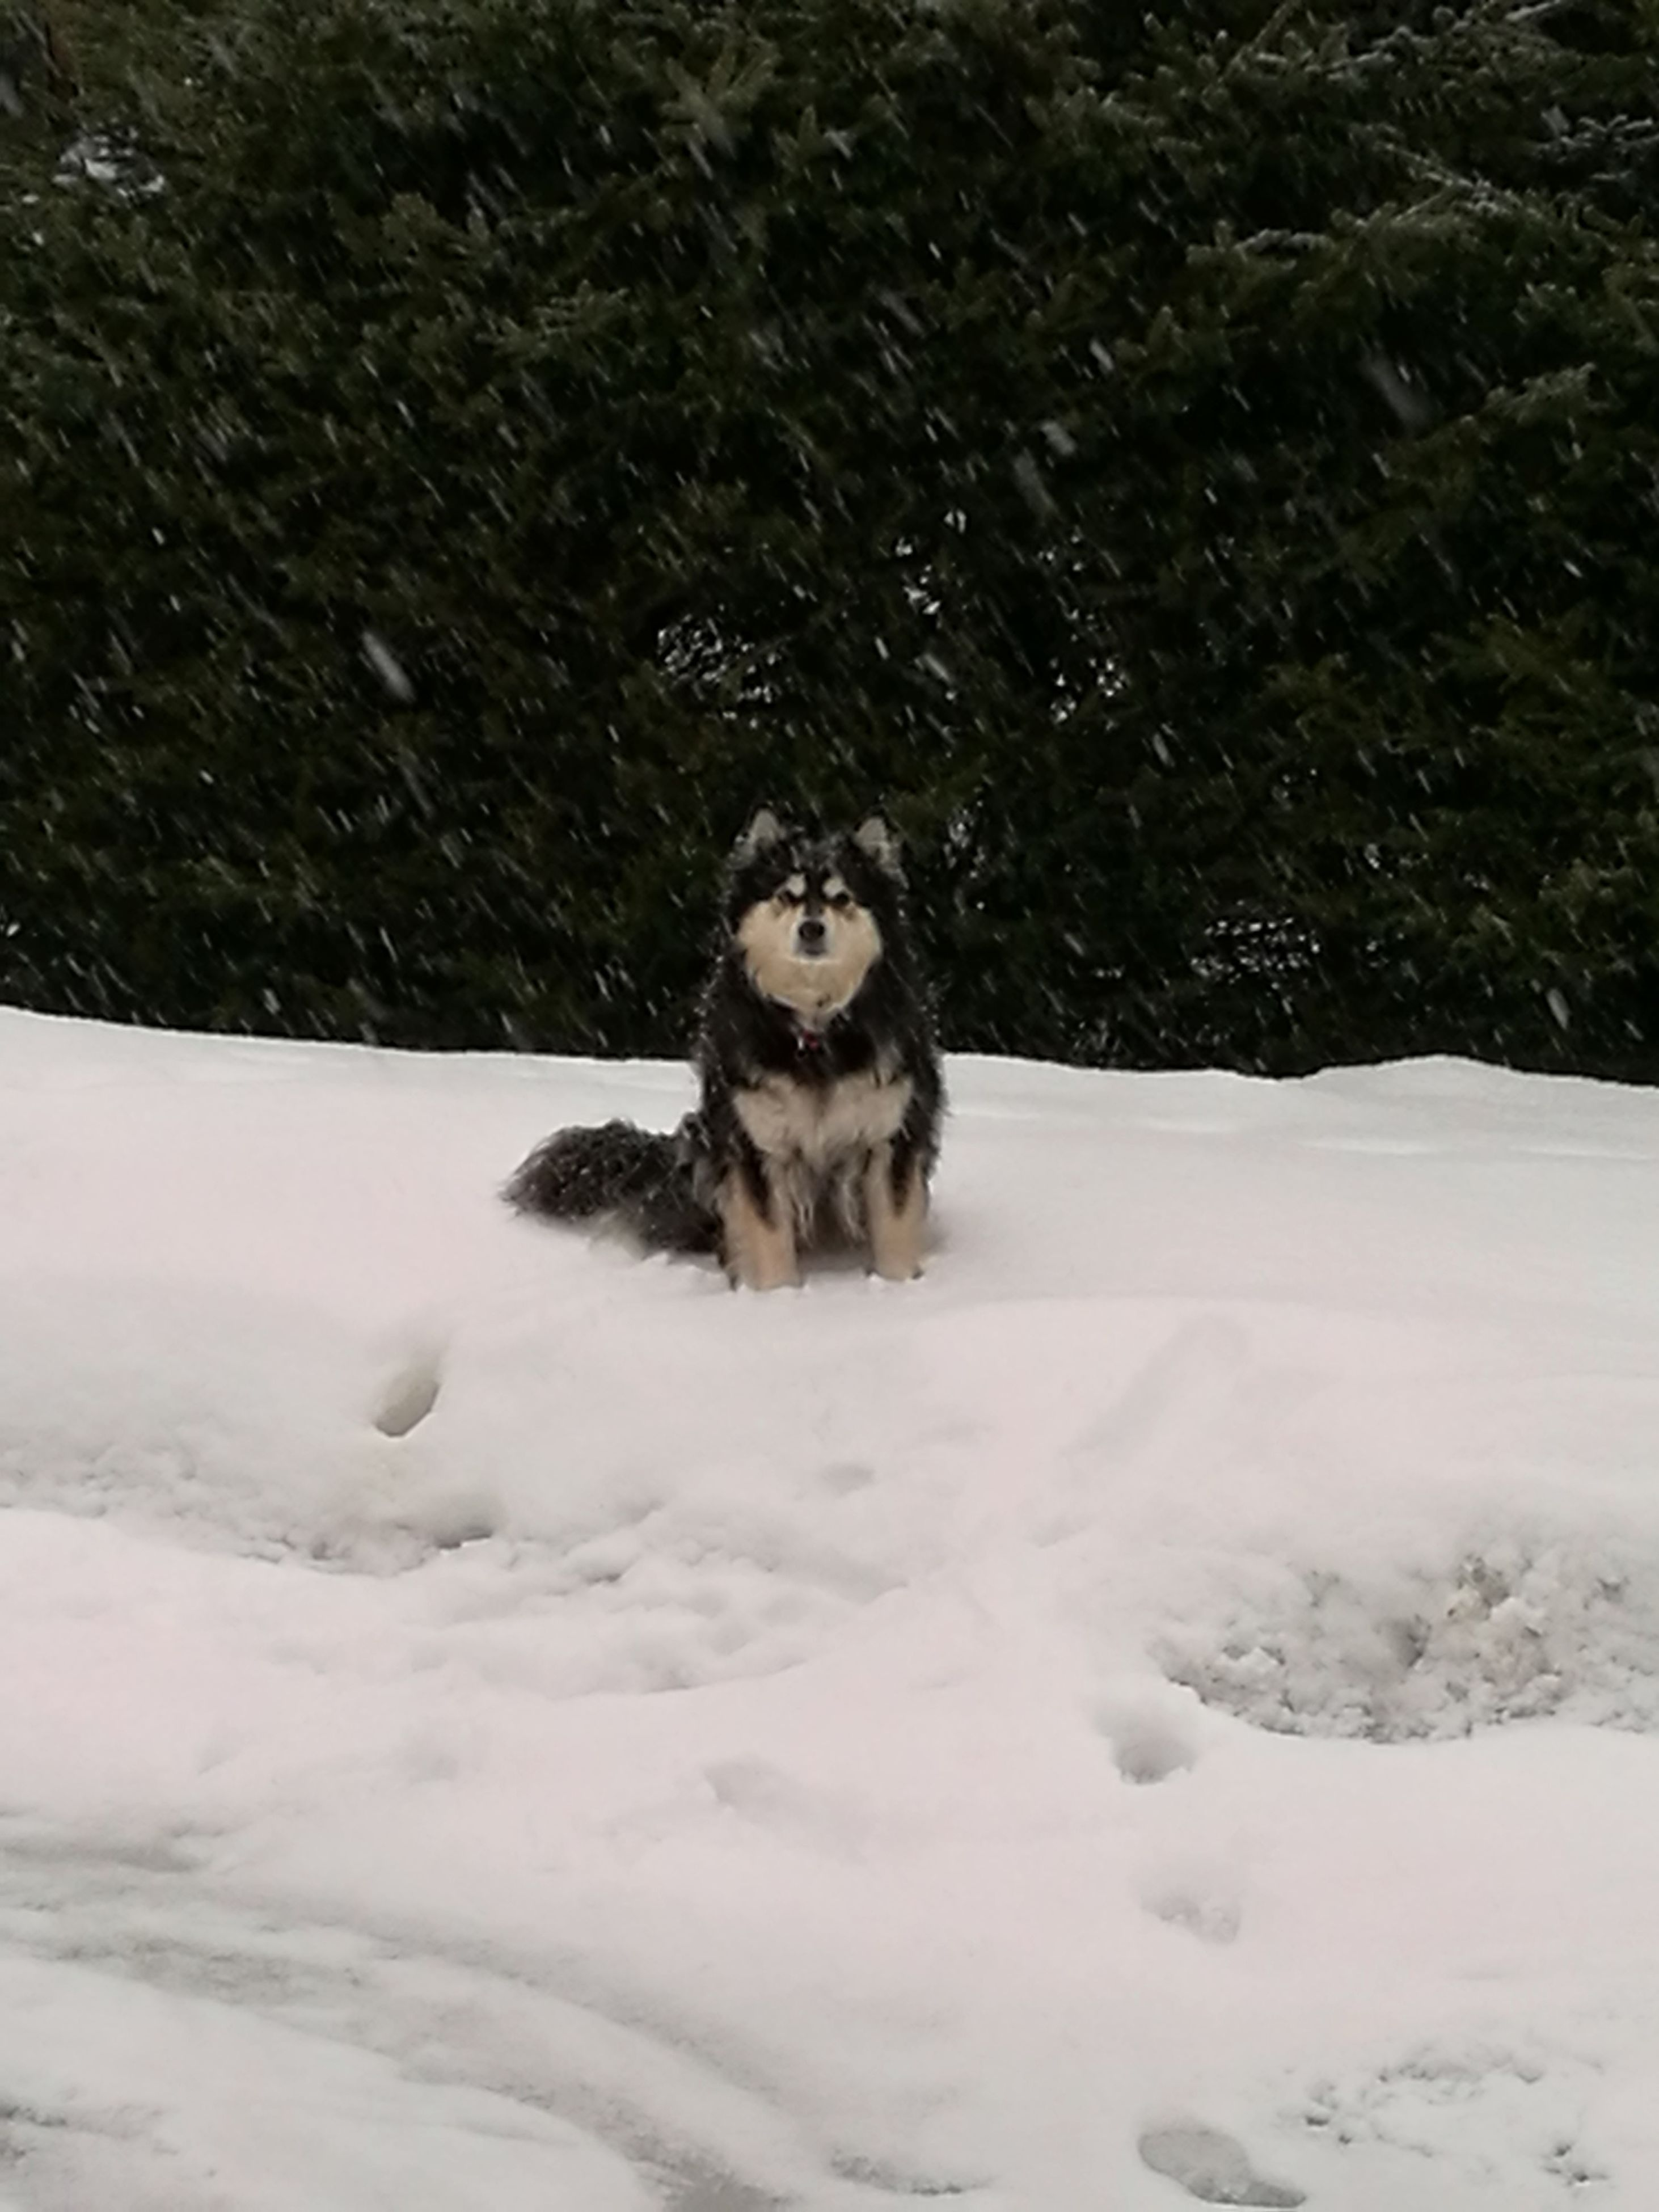 snow, one animal, winter, animal themes, cold temperature, dog, mammal, pets, snowing, no people, outdoors, field, domestic animals, nature, day